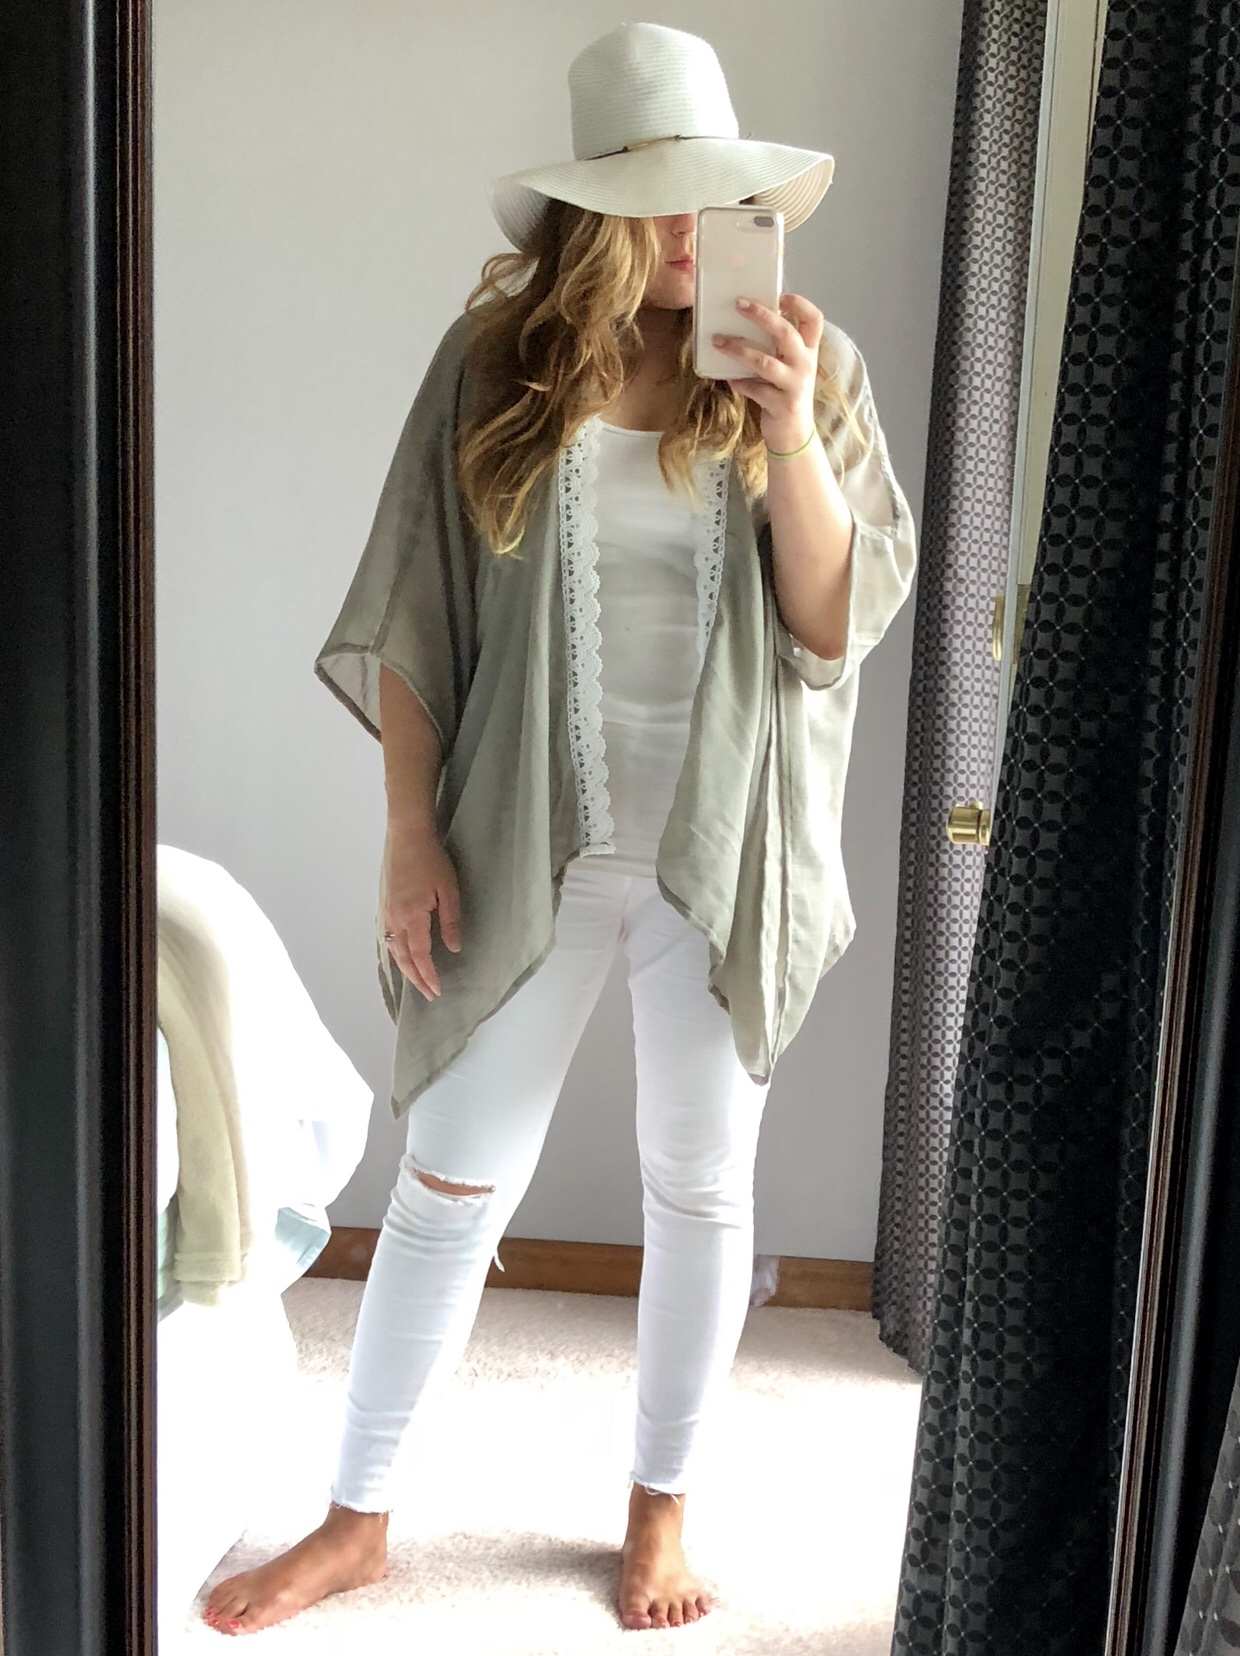 Resort Wear Outfit: White distressed jeans outfit with lace trim kimono and white straw hat